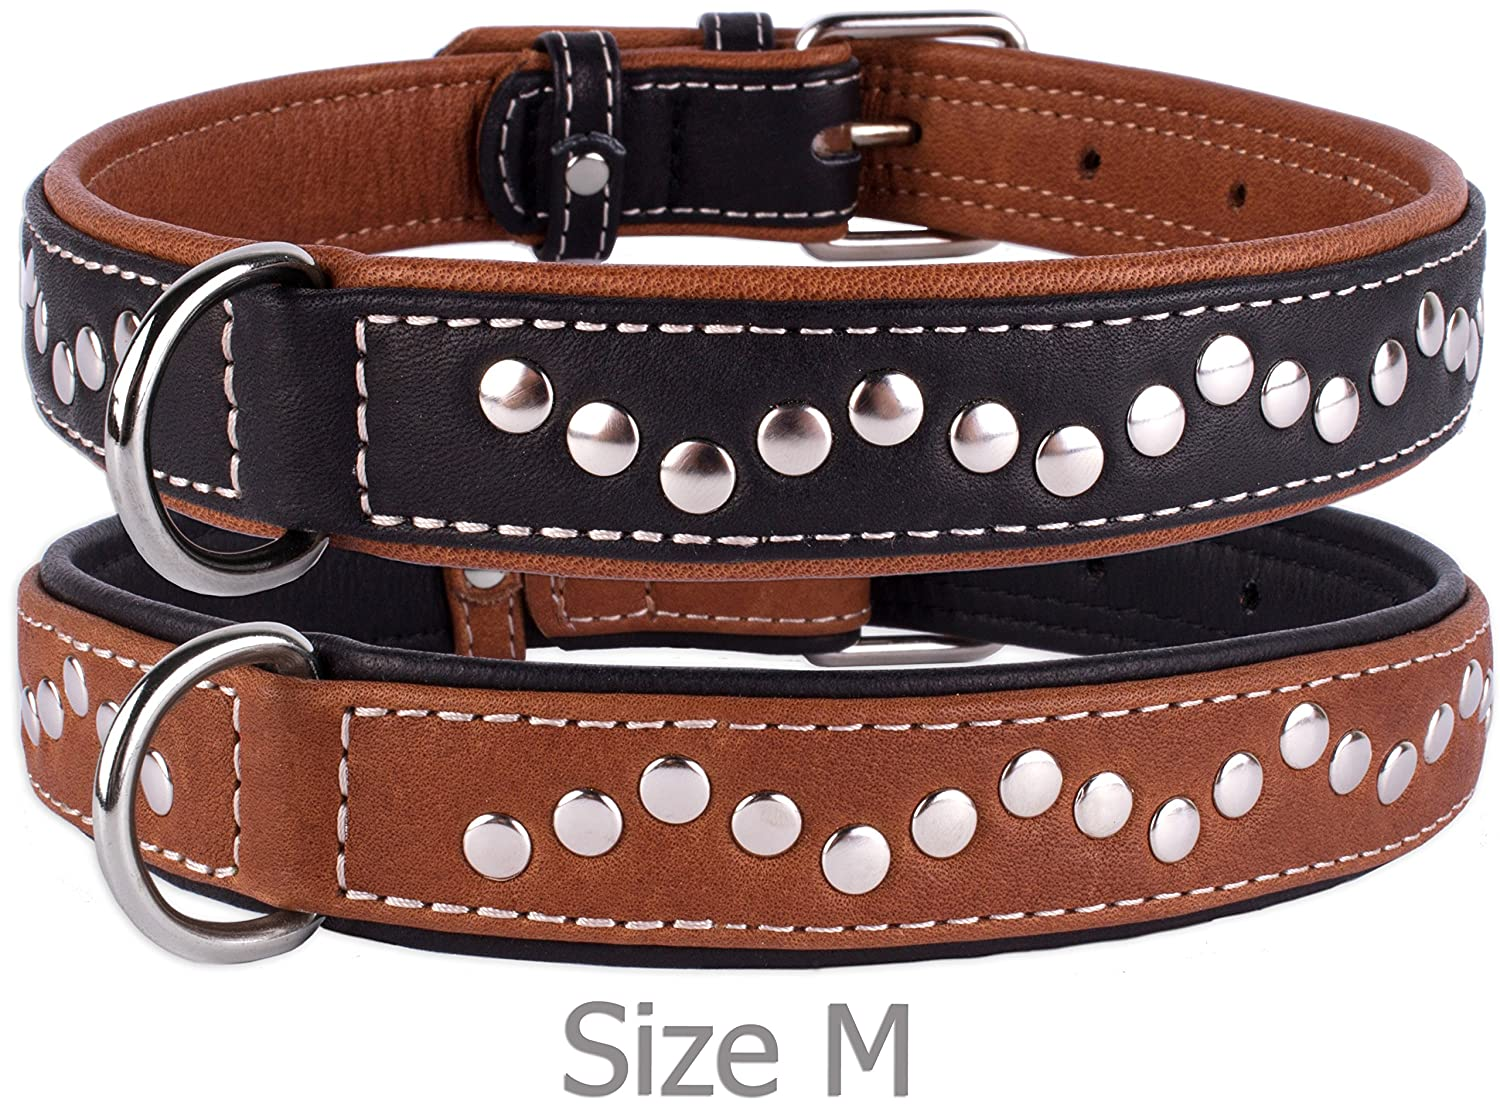 Black Neck fit 17\ Black Neck fit 17\ CollarDirect Handmade Studded Dog Collar, Genuine Leather Collar for Dogs, Soft Padded Leather Puppy Collar Brown Black Small Medium (Black, Neck fit 17  19 )